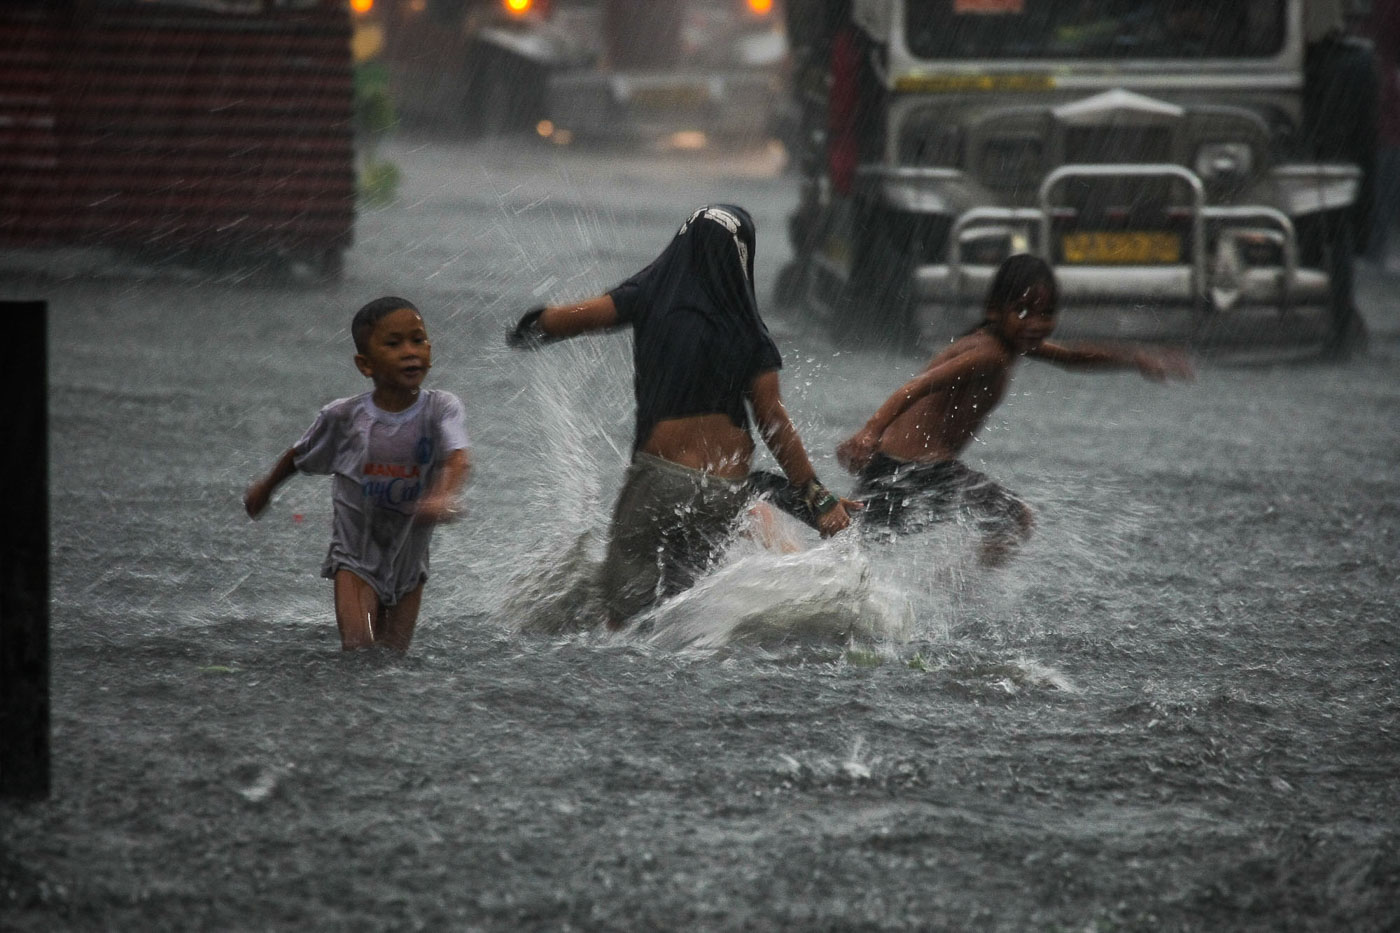 Floodwaters rose around the Manila City Hall as the afternoon heavy downpour brought about by the effect of Typhoon Maria stranded commuters trying to catch their ride home. July 7, 2018. Photo Jire Carreon/Rappler